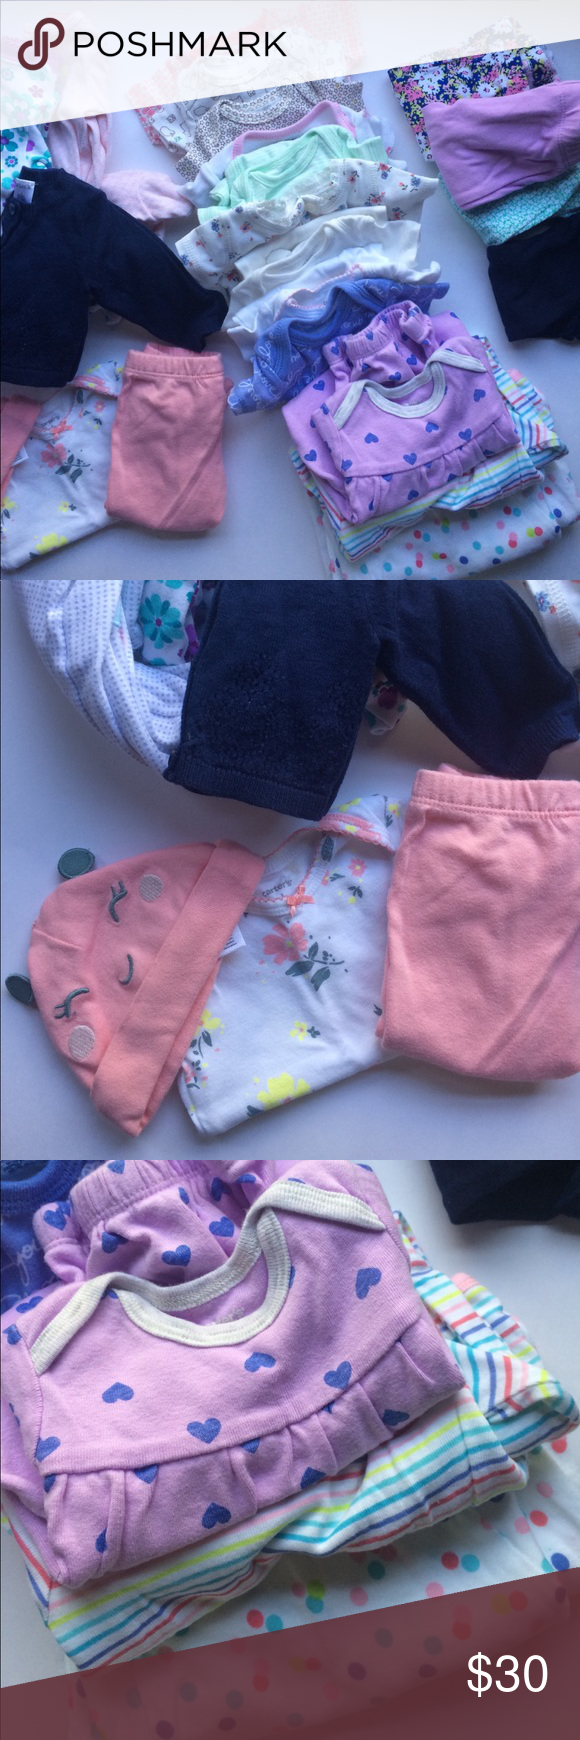 """23 Pc Newborn Girl Bundle • Mixed Outfits & Colors Bundle of baby girl gowns, one pieces / onesies, pants, sleep & play rompers, a cardigan, a """"take home"""" outfit of top / pants/ hat • Sizes are Newborn, 0-3 months • Colors are pink, blue, purple, periwinkle, Coral, green, peach, navy, white, cream, etc. • Mixed brands including Carter's, Just For You (Target), Garanimals, etc. • Nice mixed bundle - EUC - some of it has never been worn Carter's One Pieces Footies"""